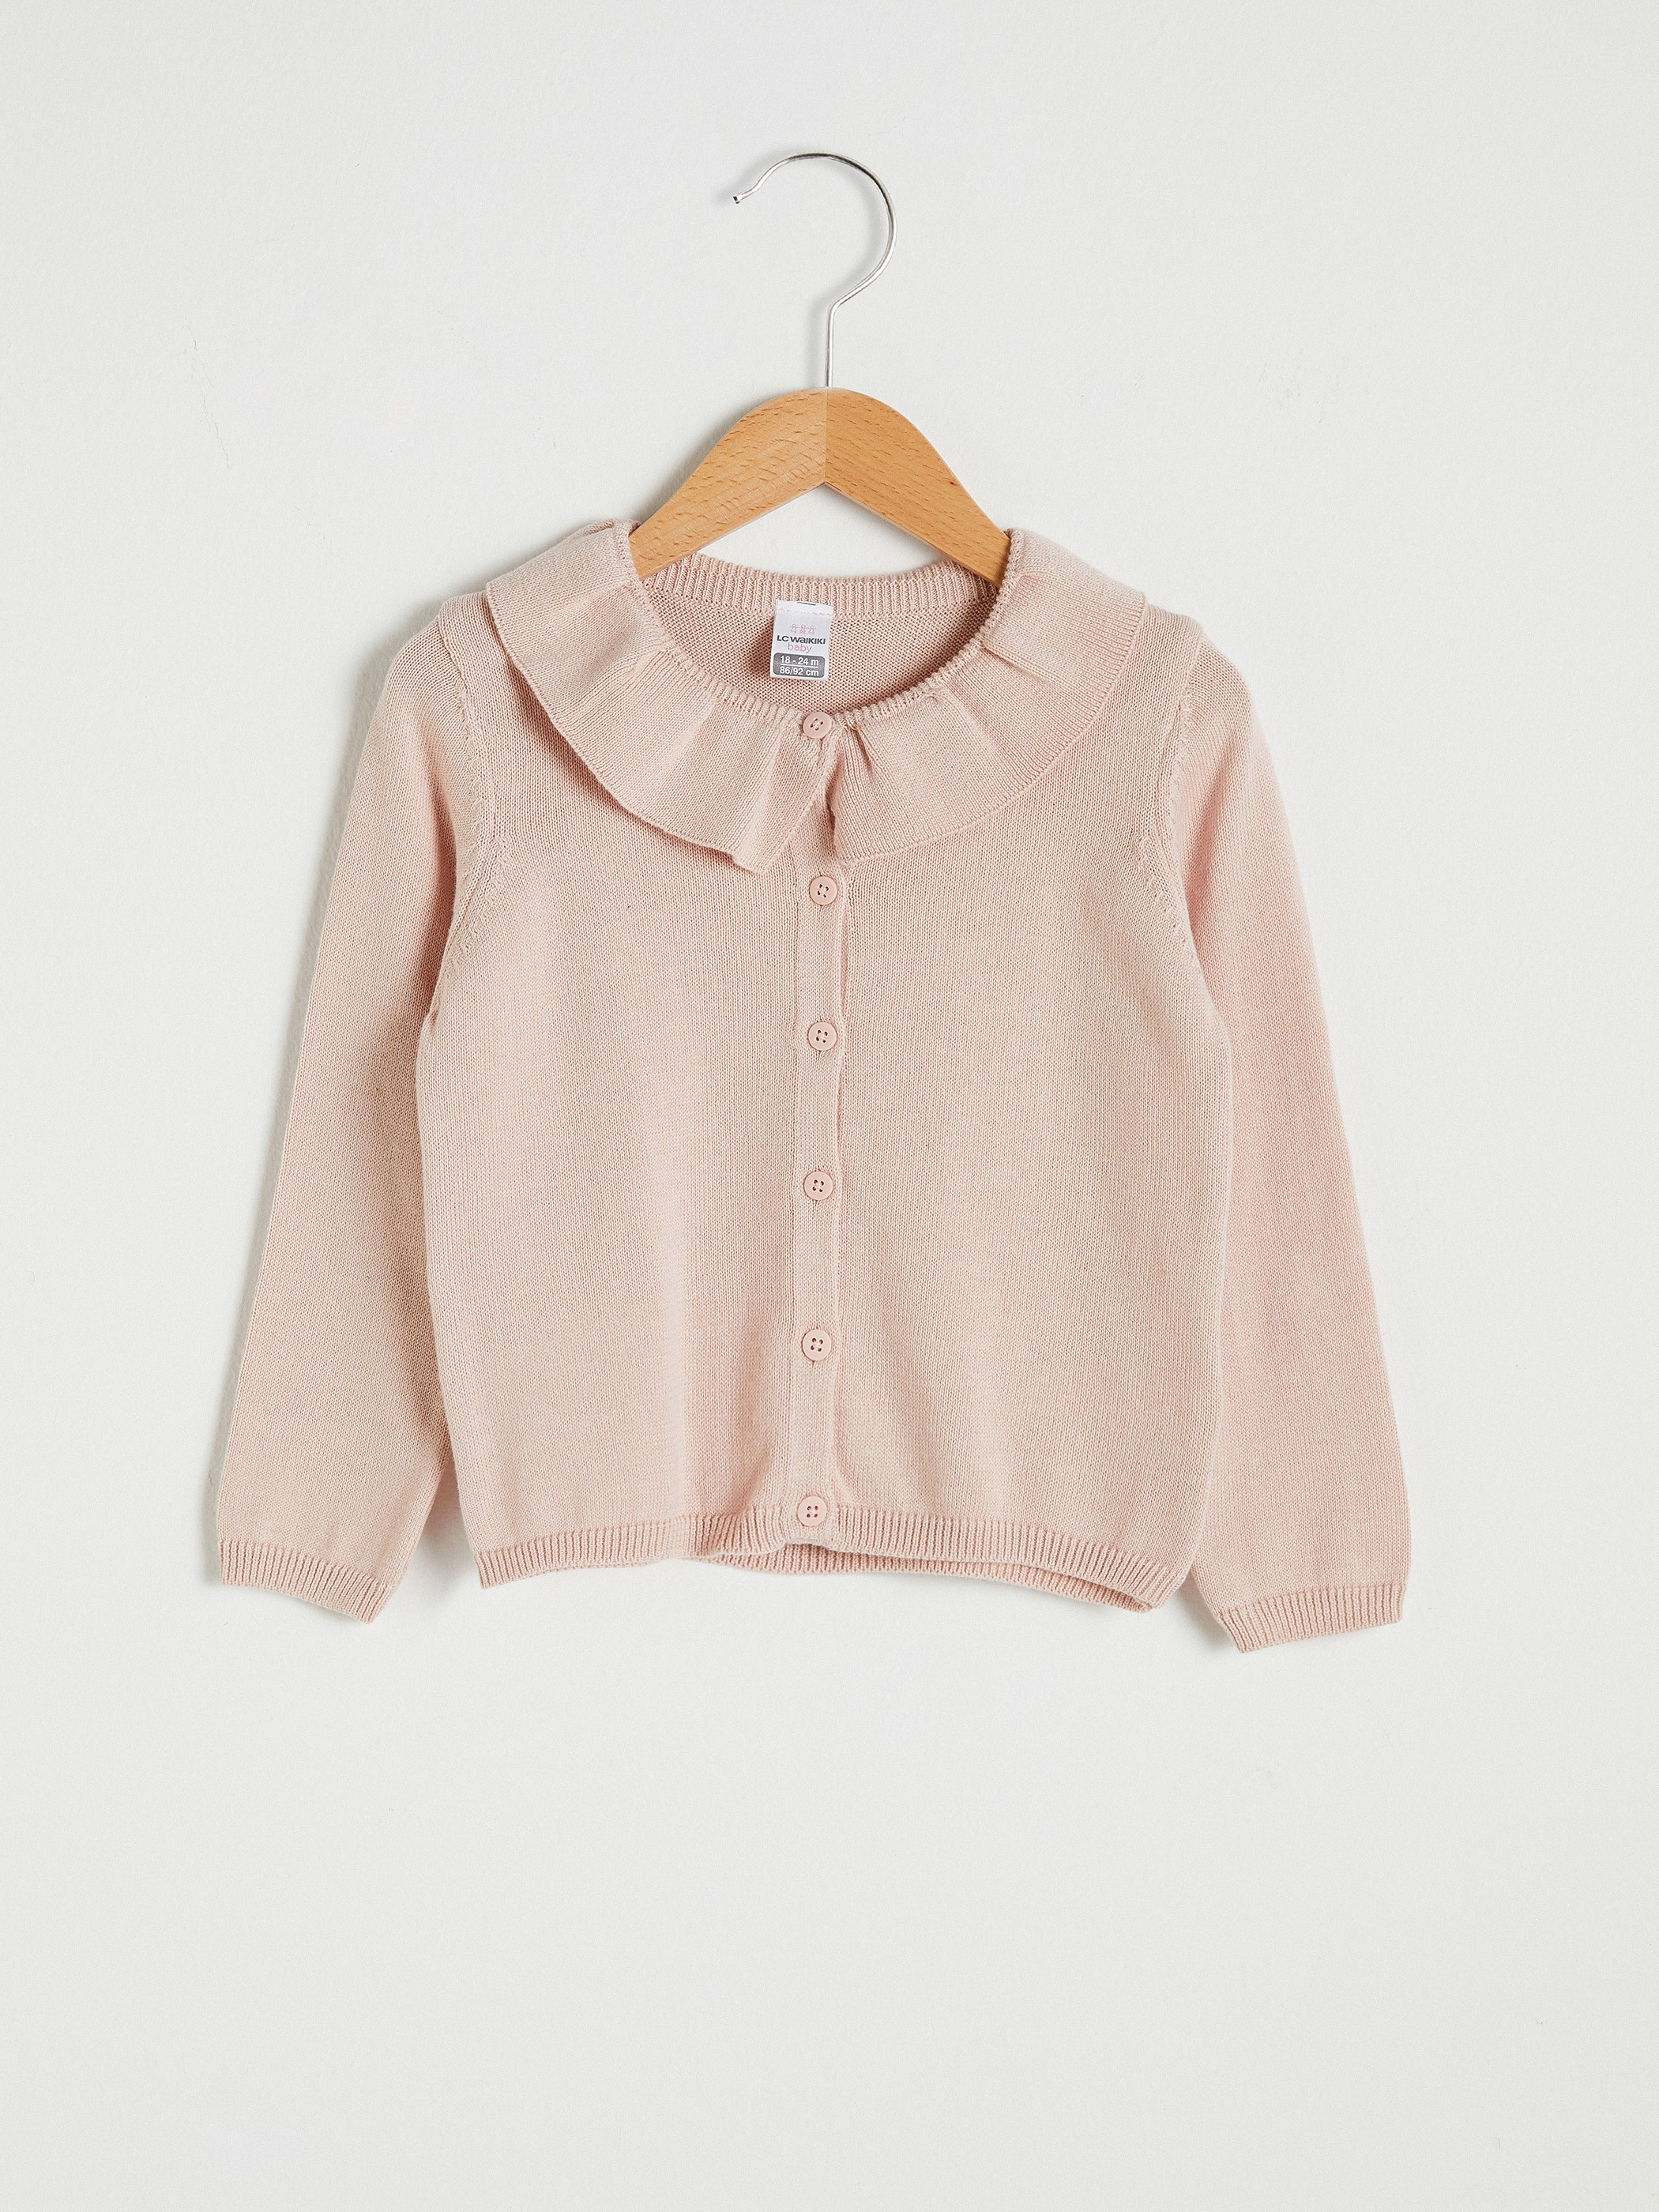 PINK - Baby Girl's Tricot Cardigan - S17378Z1